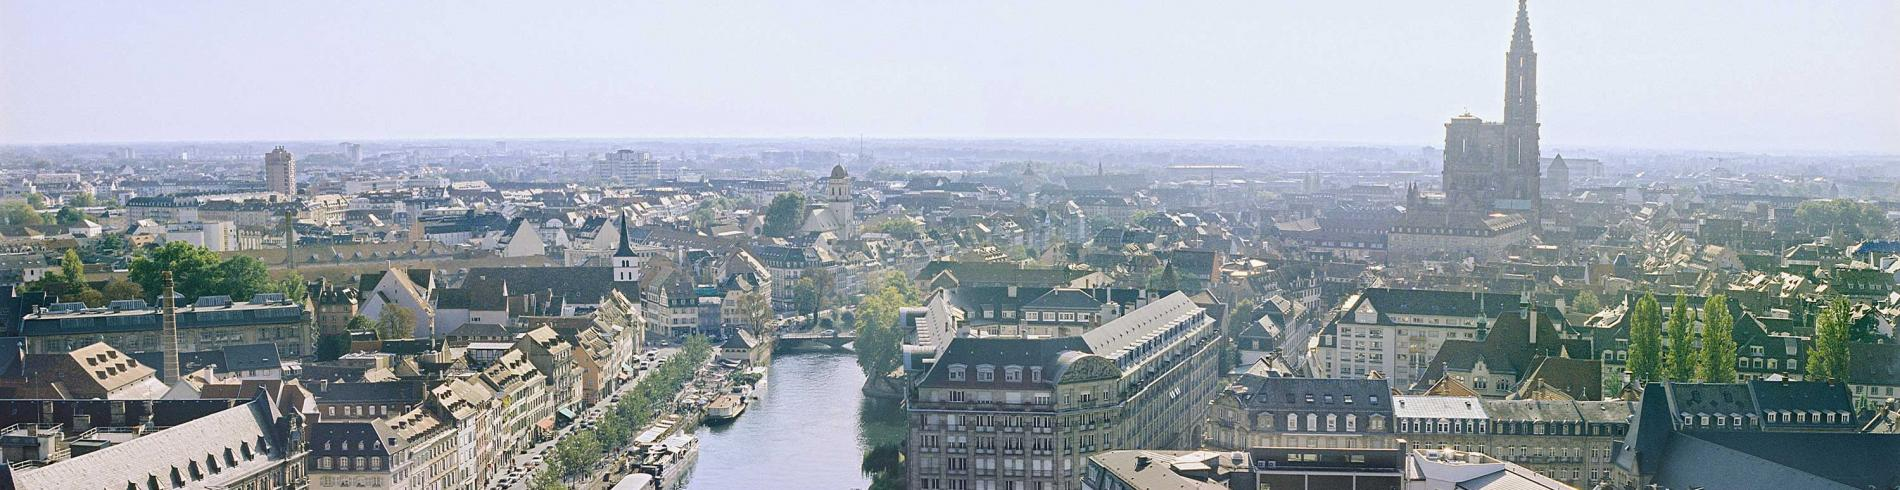 Panorama of the town of Strasbourg with the river